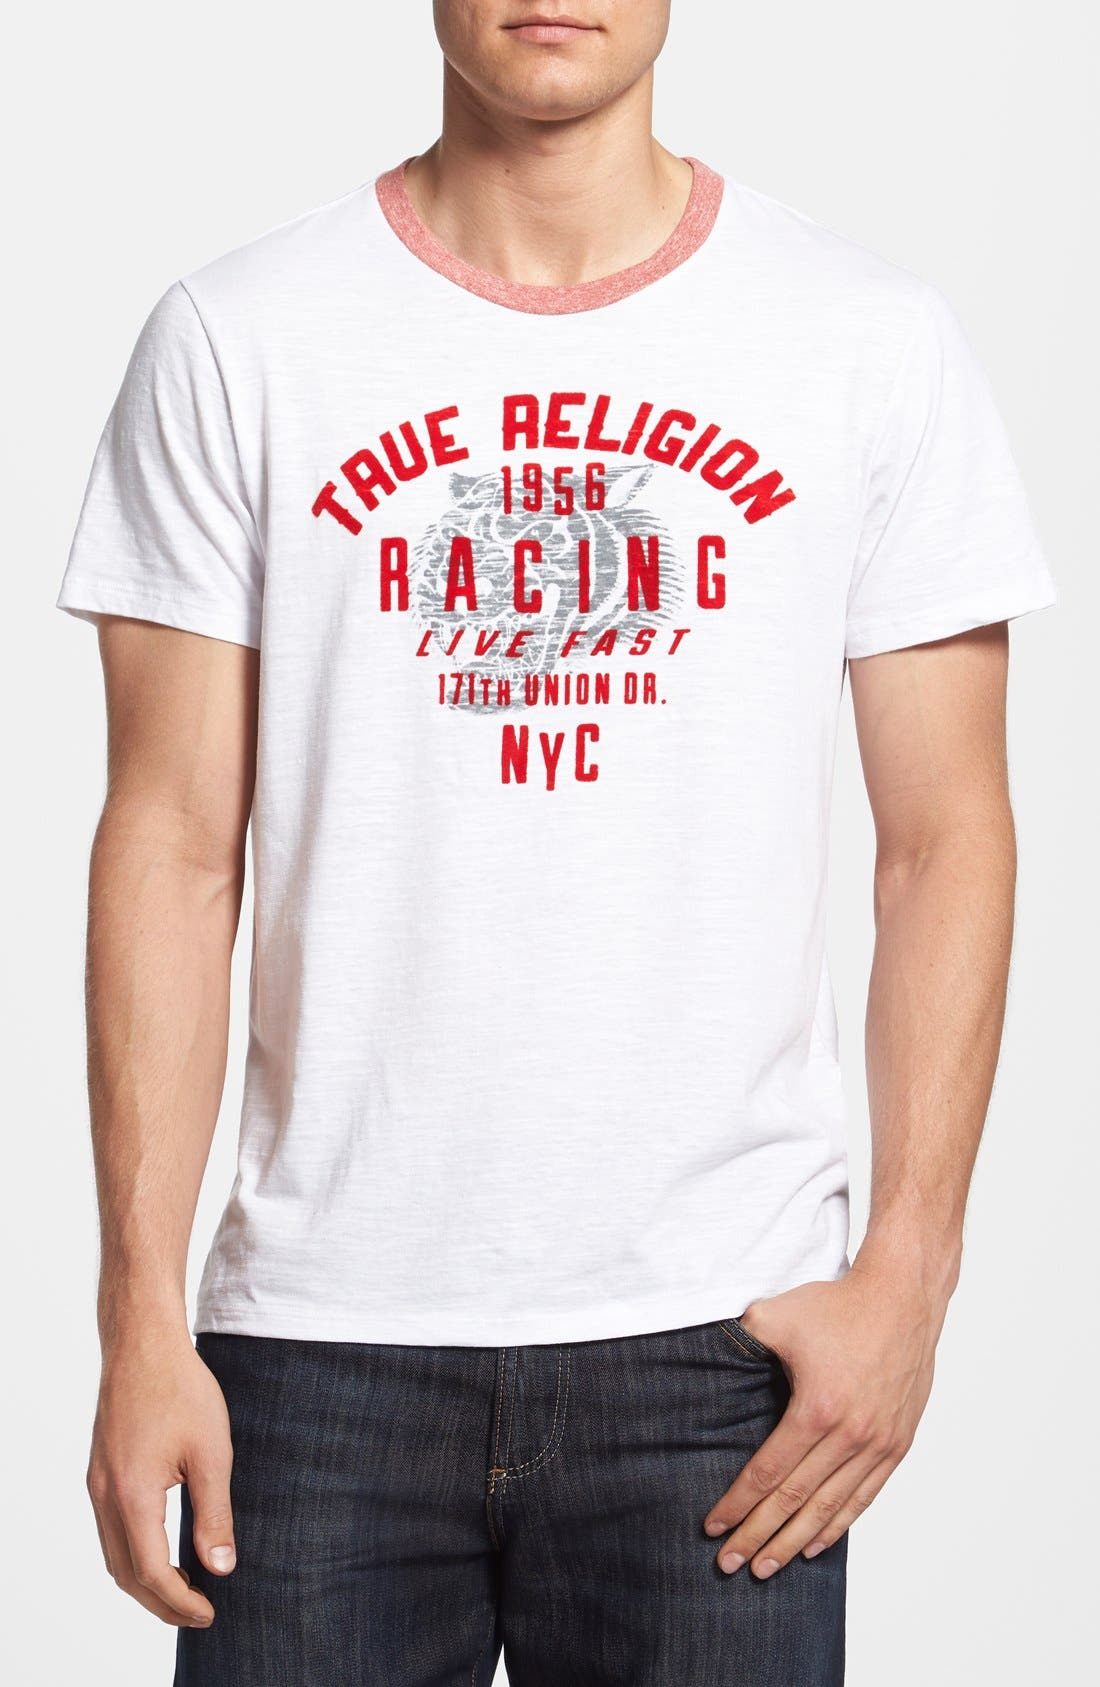 Main Image - True Religion Brand Jeans '1956 Races' Graphic T-Shirt